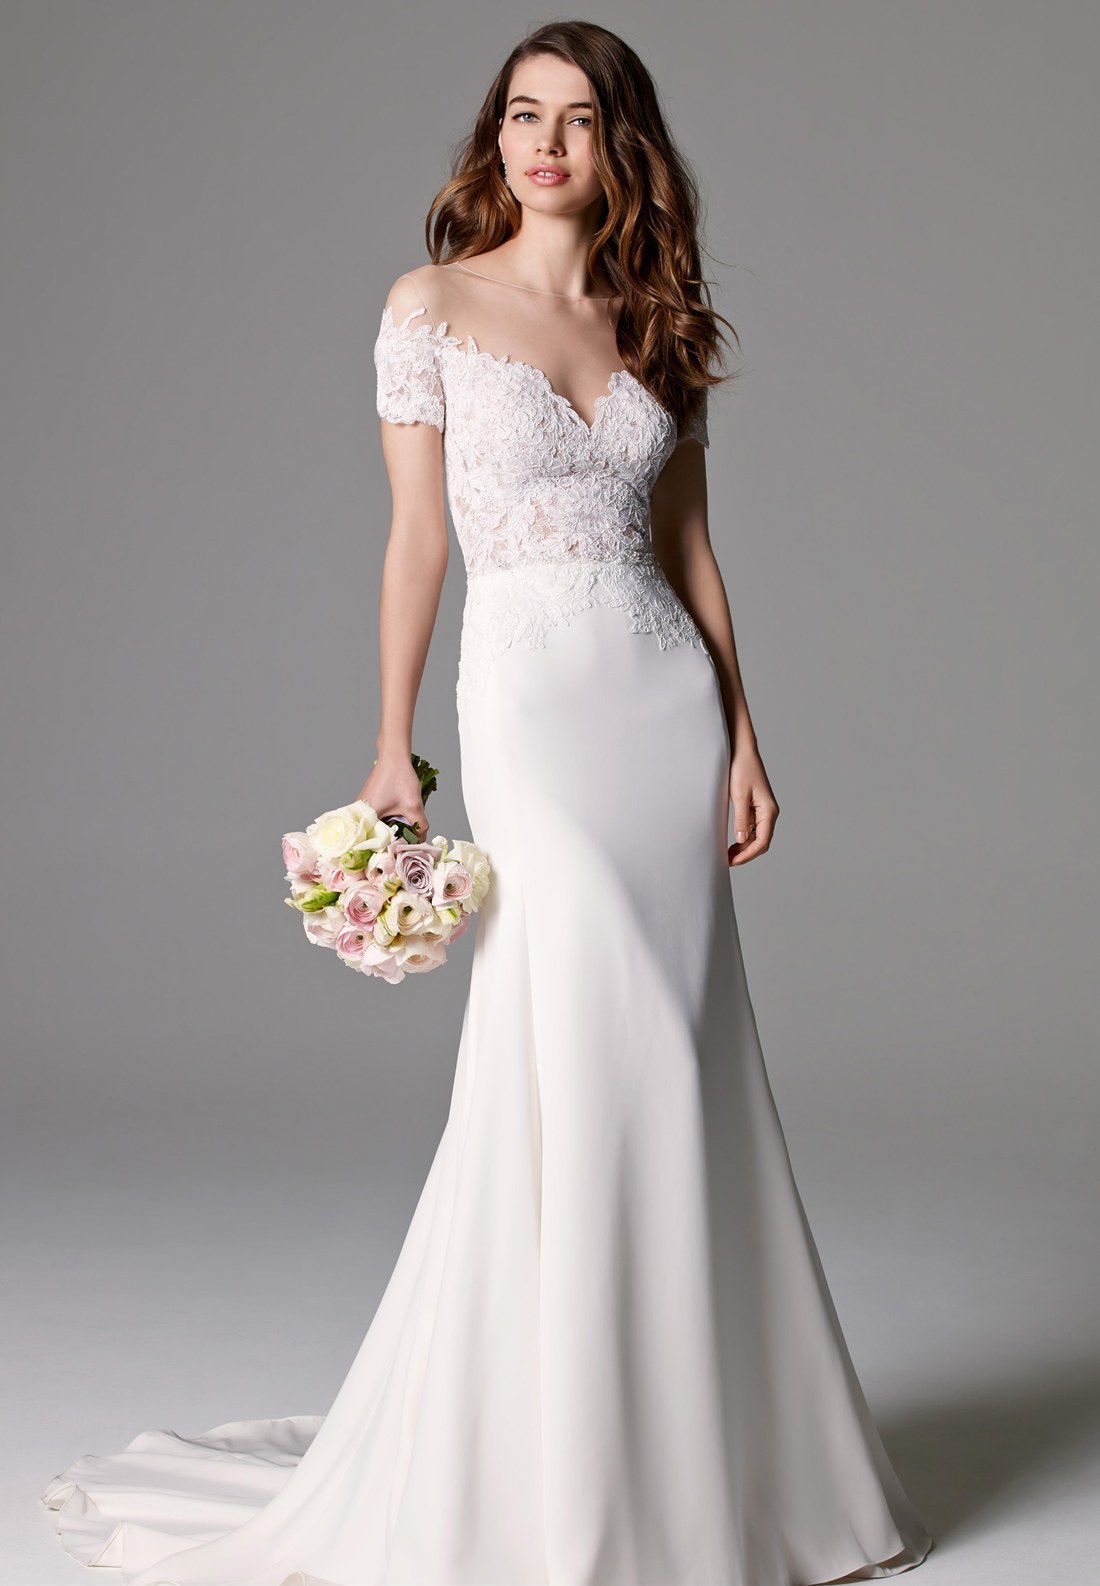 A model in an off-the-shoulder lace wedding gown